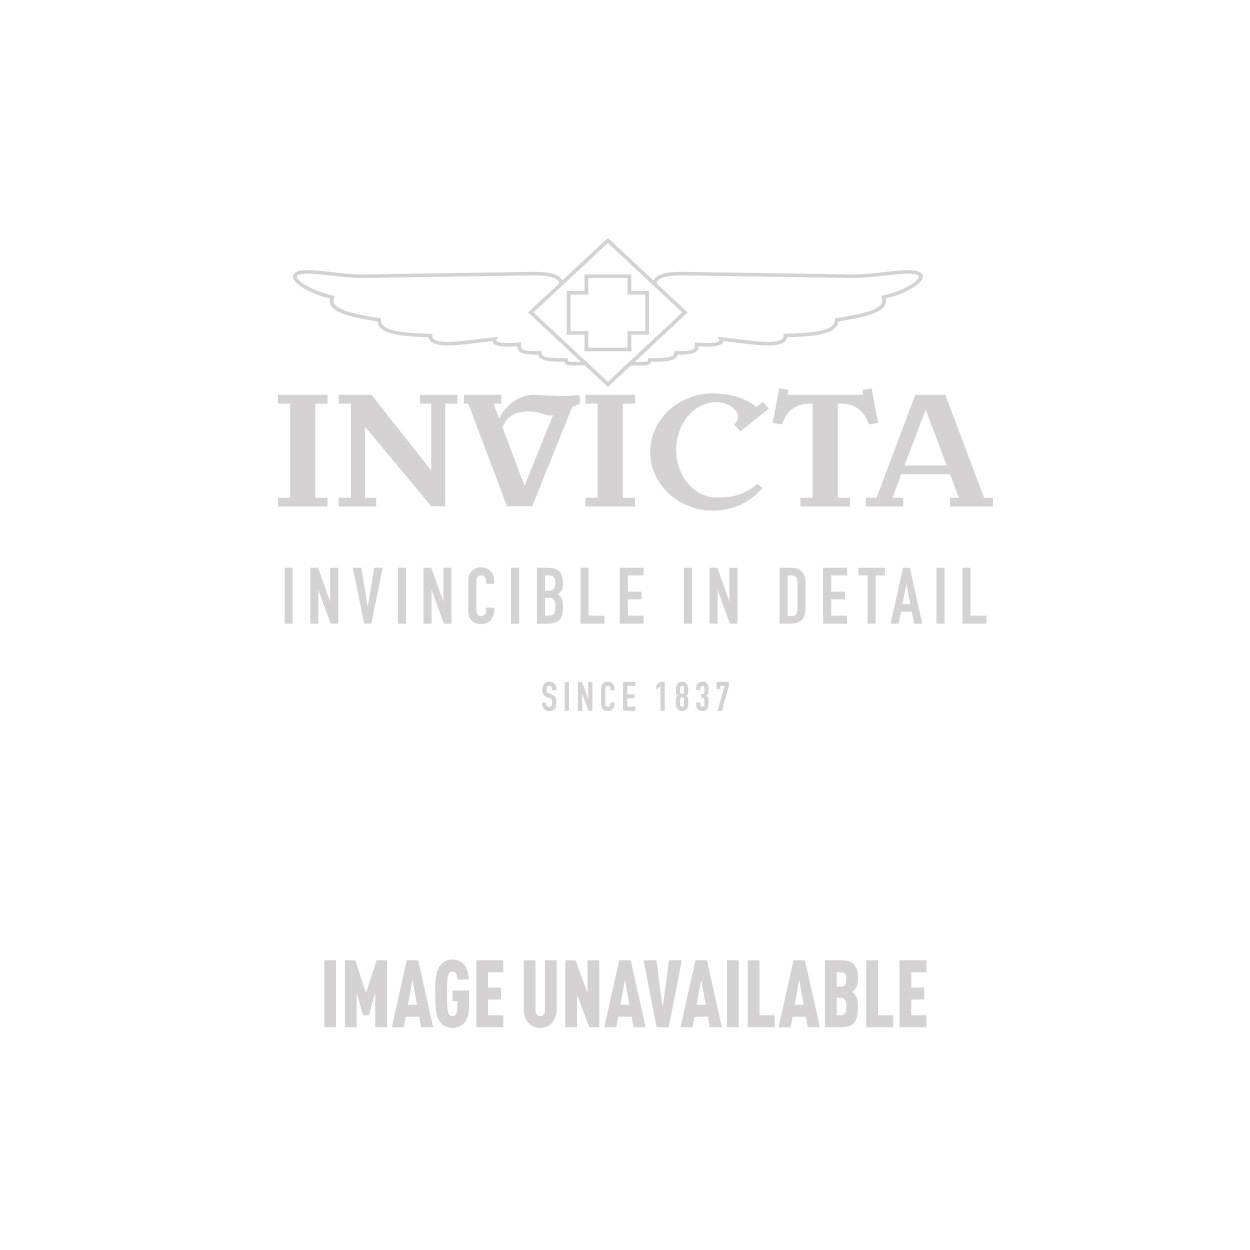 Invicta I-Force Quartz Watch - Stainless Steel case - Model 11519